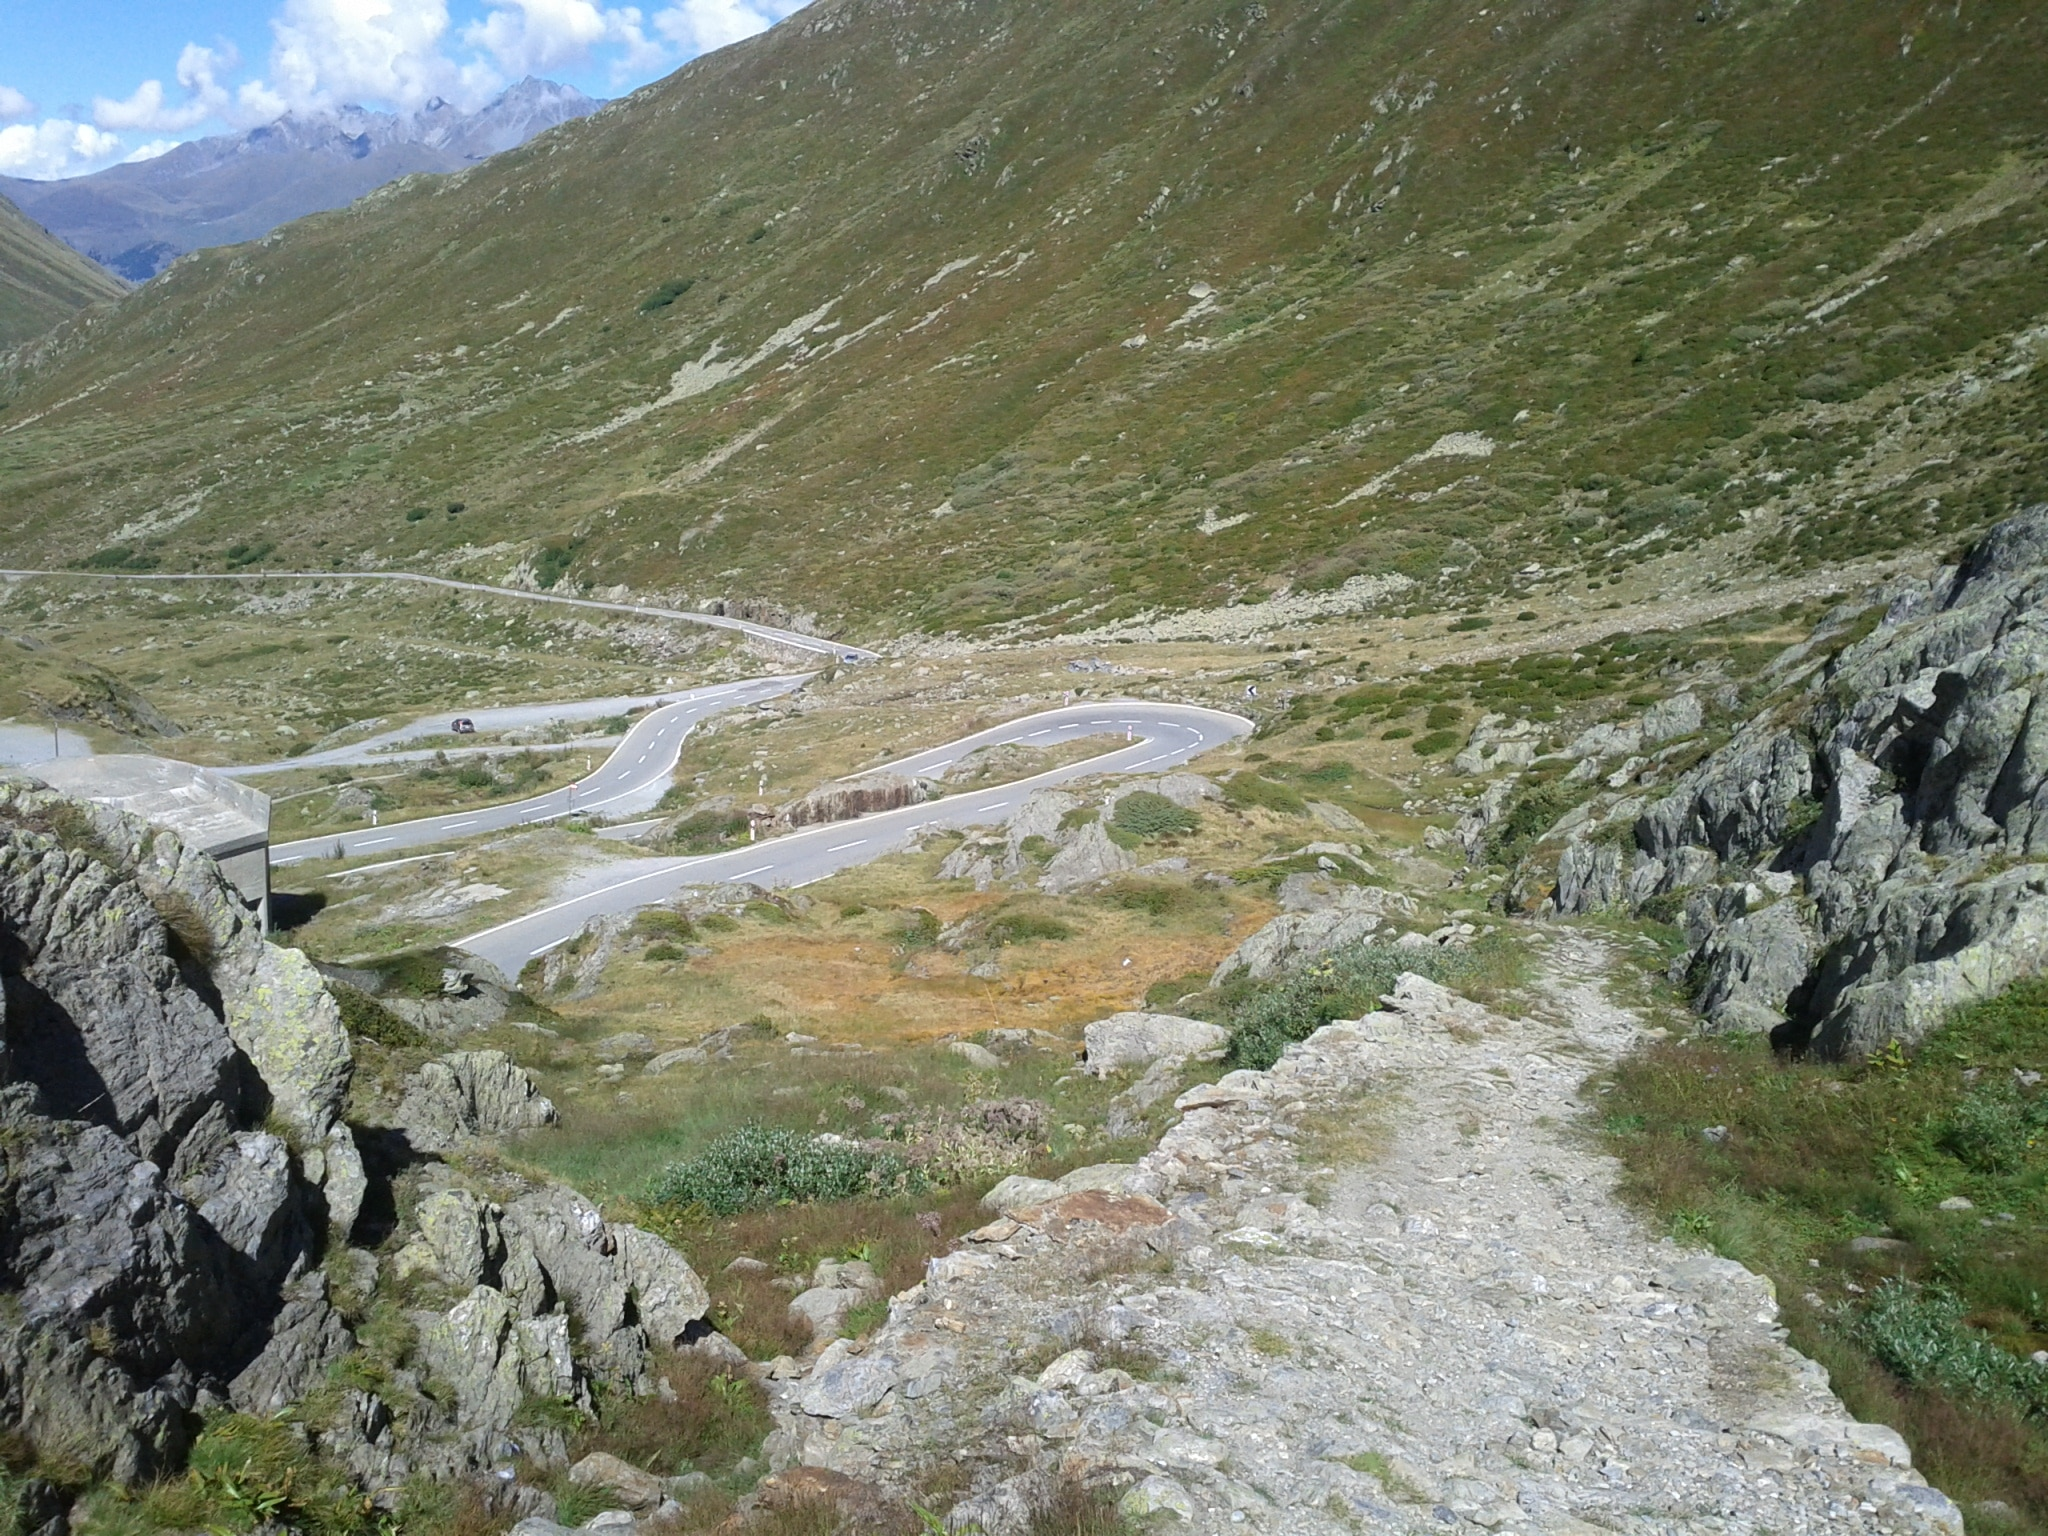 The centuries old road to the St Bernard pass versus the switchback pavement of modern days.